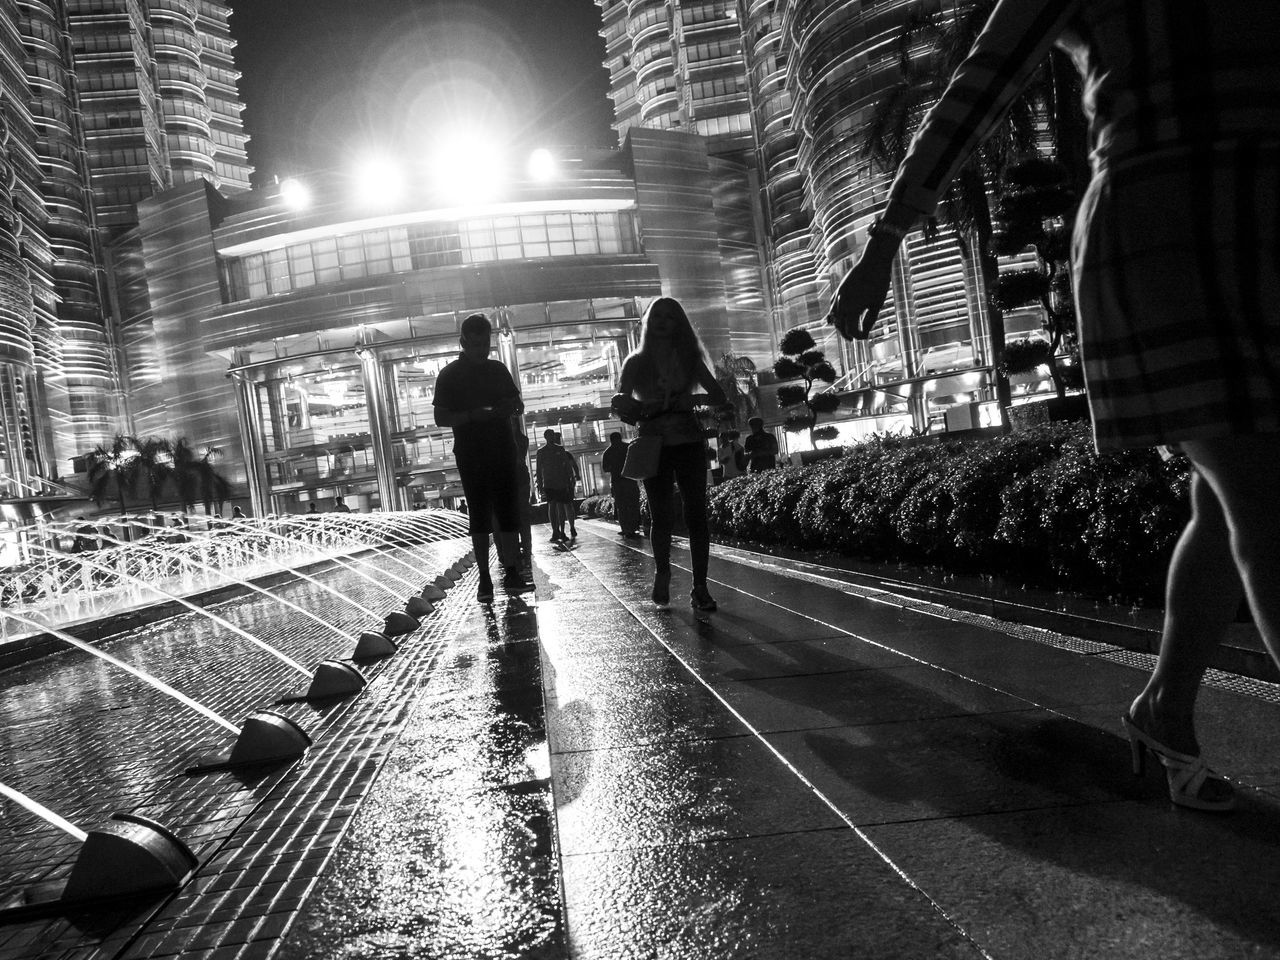 Silhouettes of people on a wet ground with a small fountain on one side and a modern building at the back After The Rain Architecture B&w B&w Photography Black And White Blackandwhite City City Life City Lights Cityscape Illuminated Lights Night Nightphotography Outdoors Petronas Twin Towers Silhouette Silhouettes Streetphotography Togetherness Urban Urbanphotography Walk This Way Walking Wet